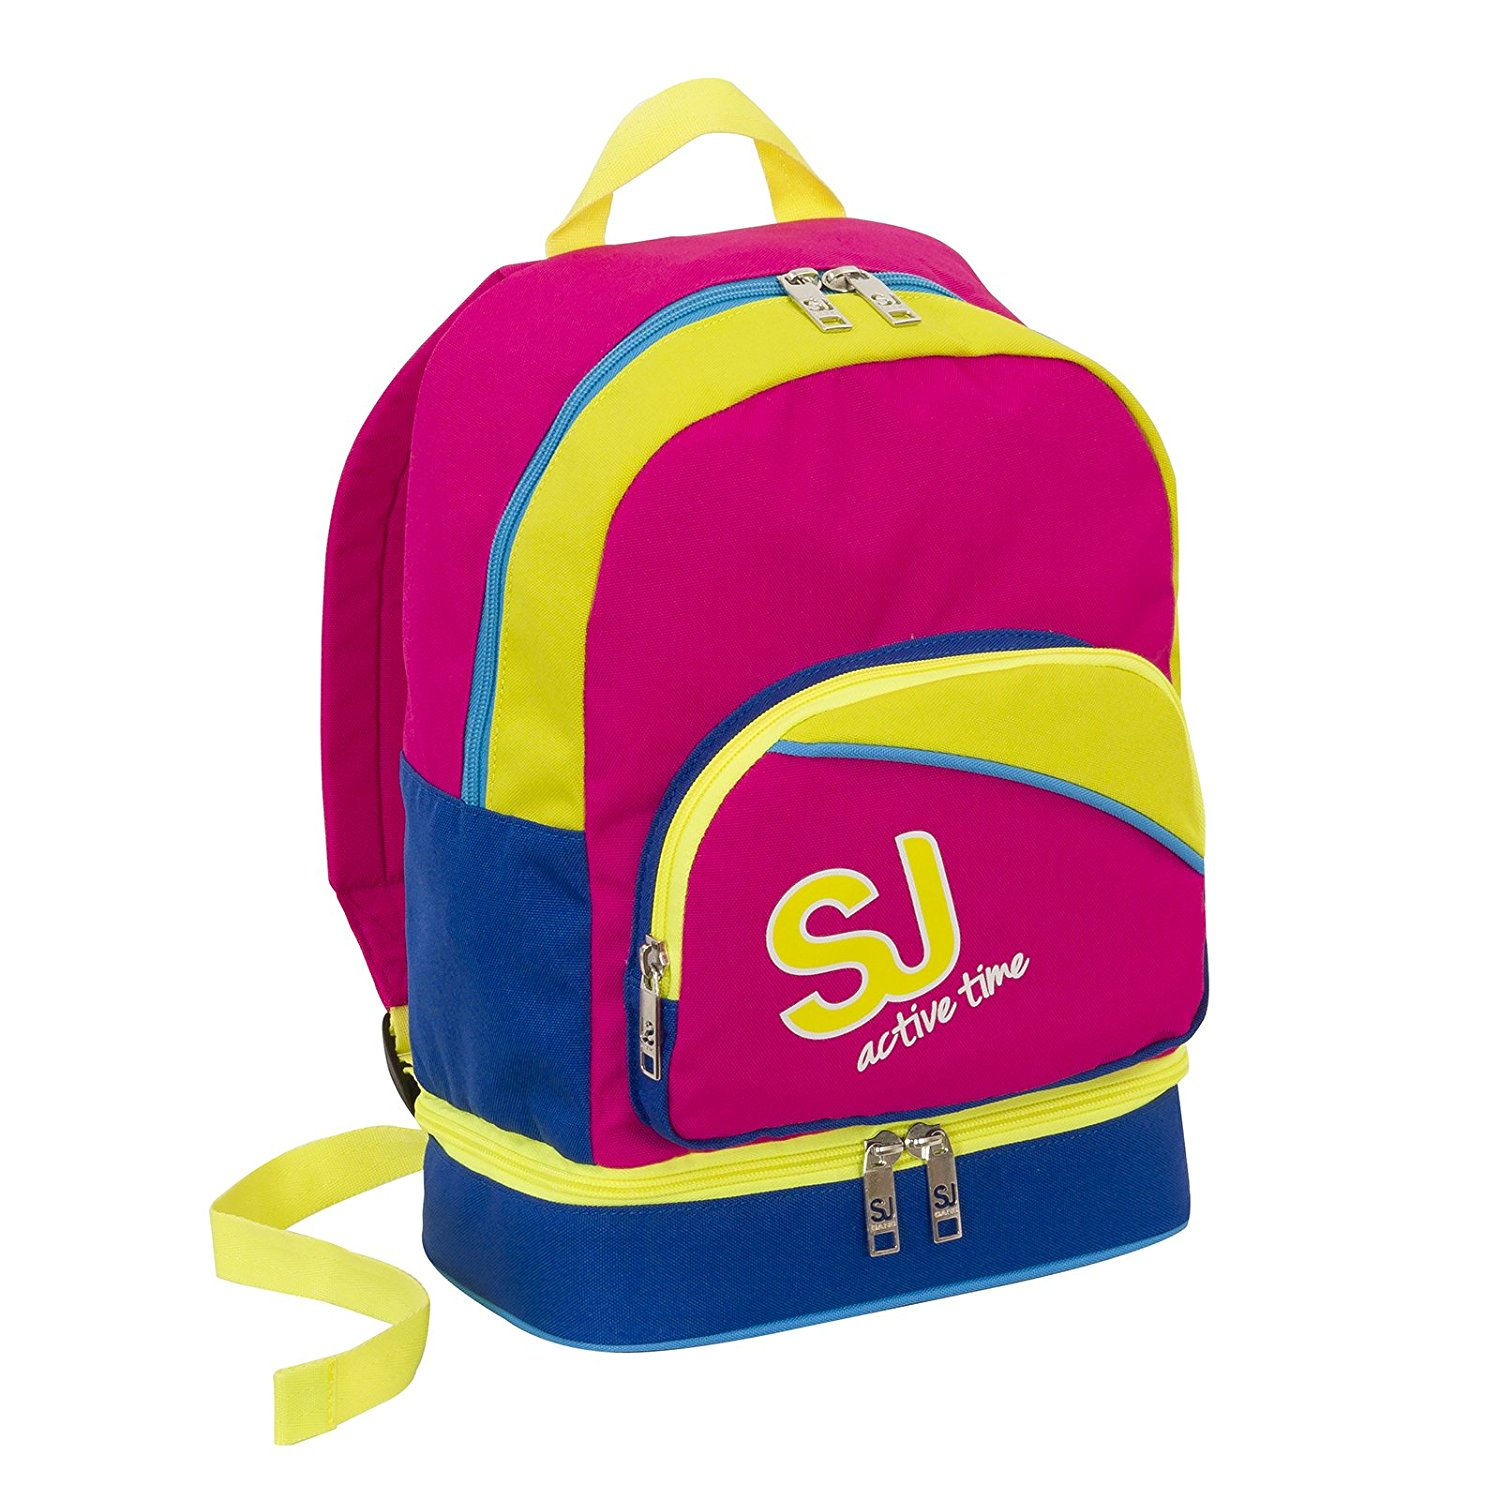 Zainetto Con Portavivande TERMICO - SEVEN SJ Active Lunch Backpack - Rosa